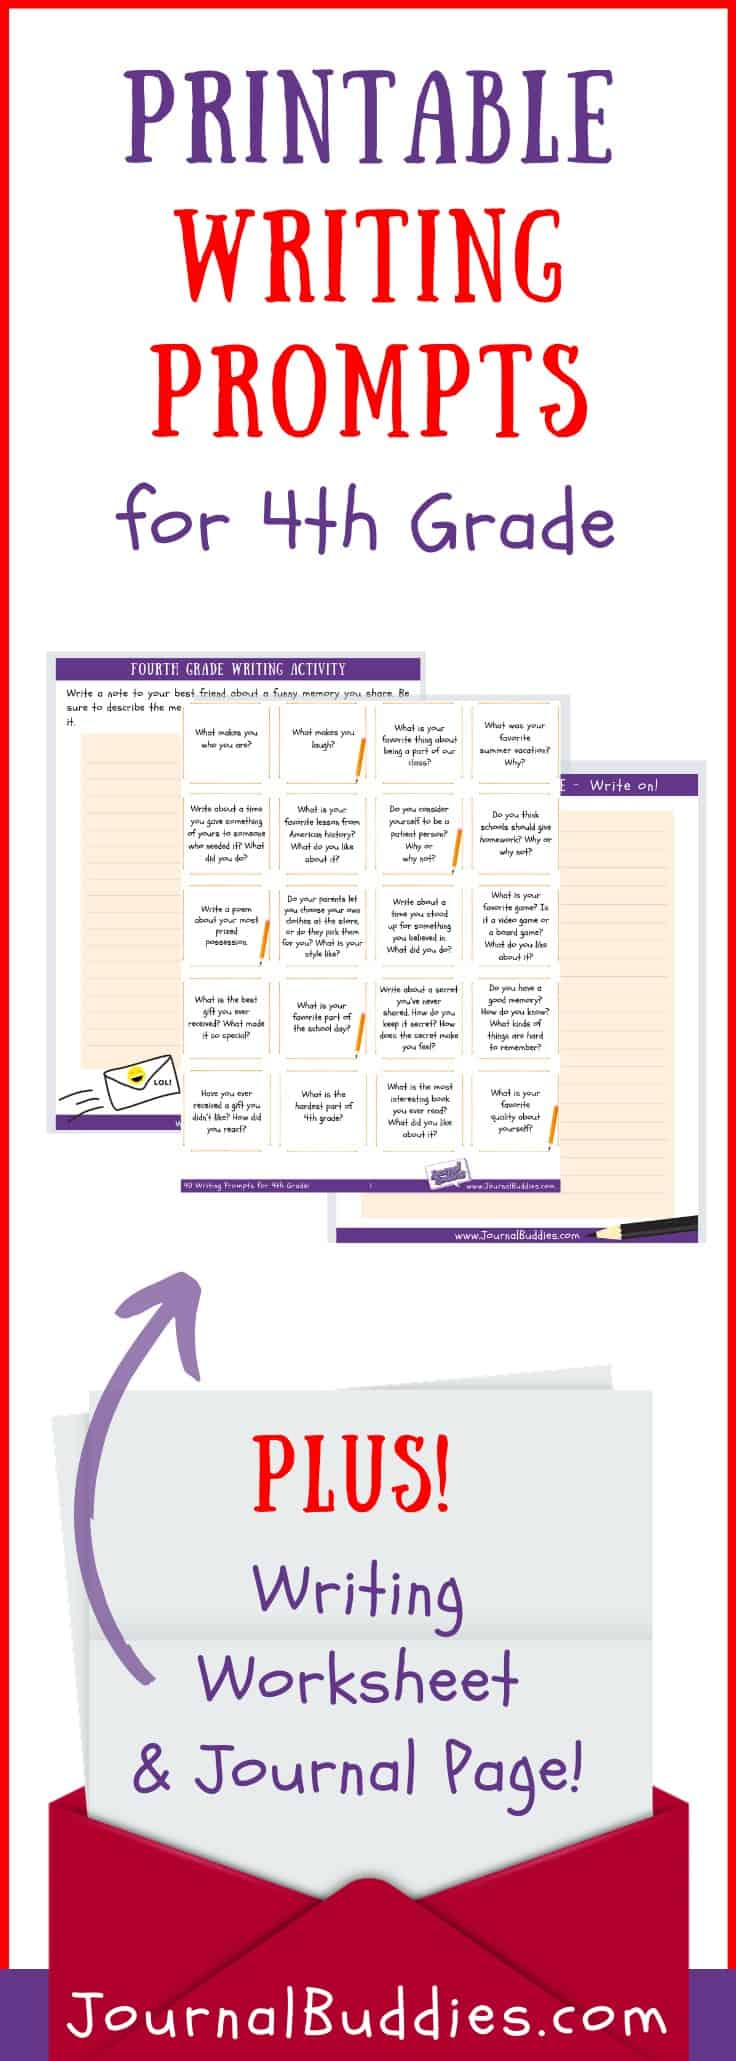 Writing Prompts and Printable Writing Worksheets for 4th Grade